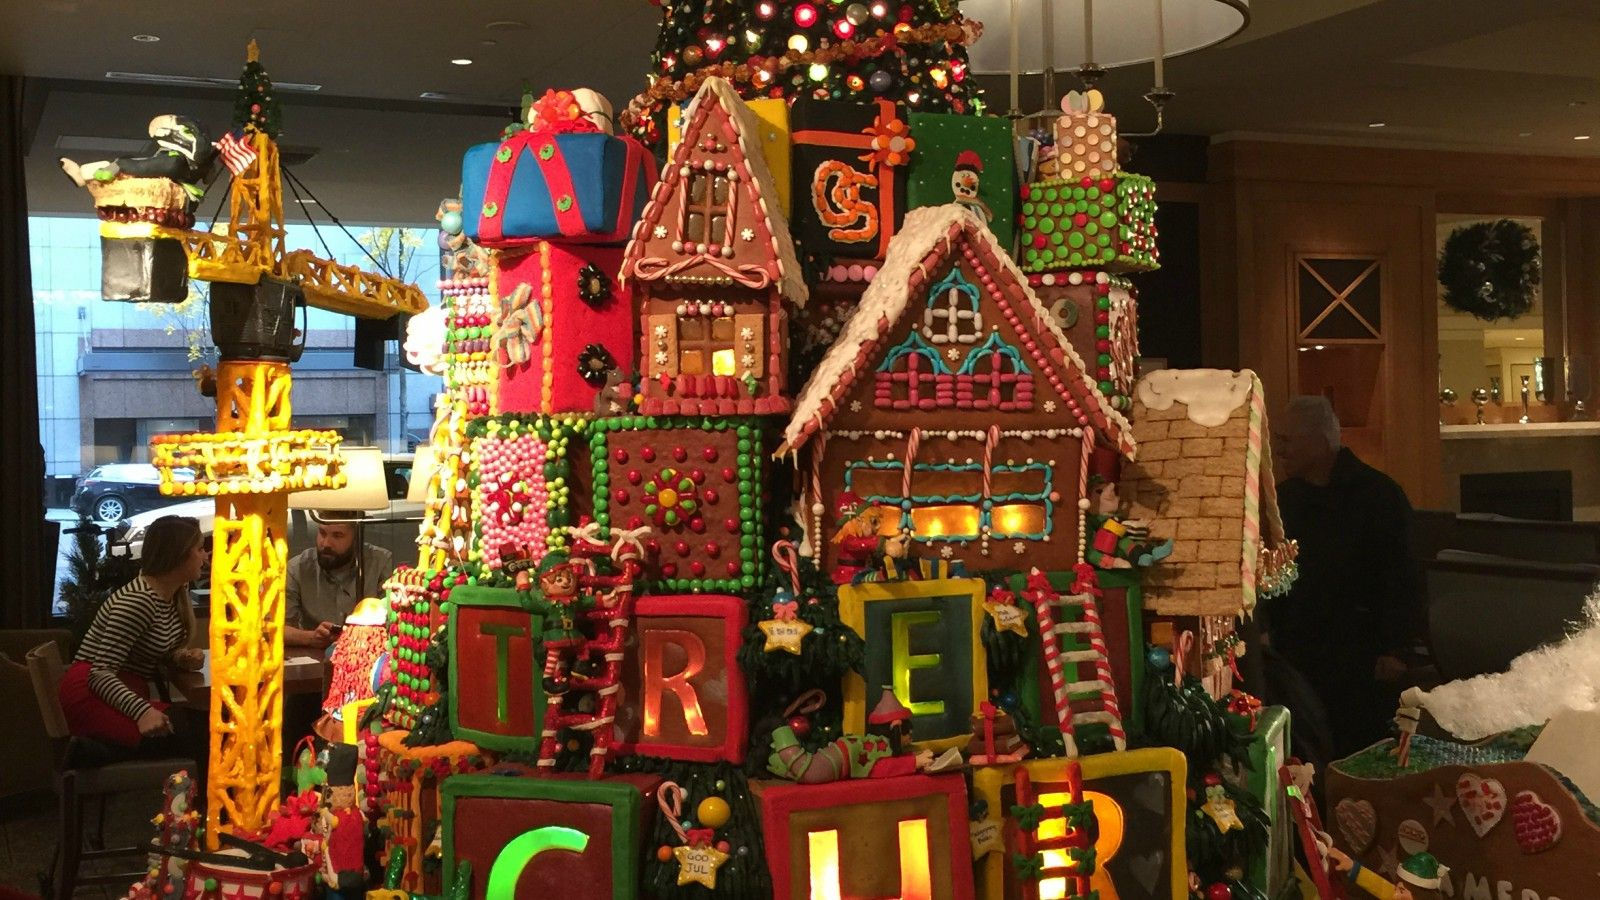 Seattle Holiday Events - Gingerbread Village